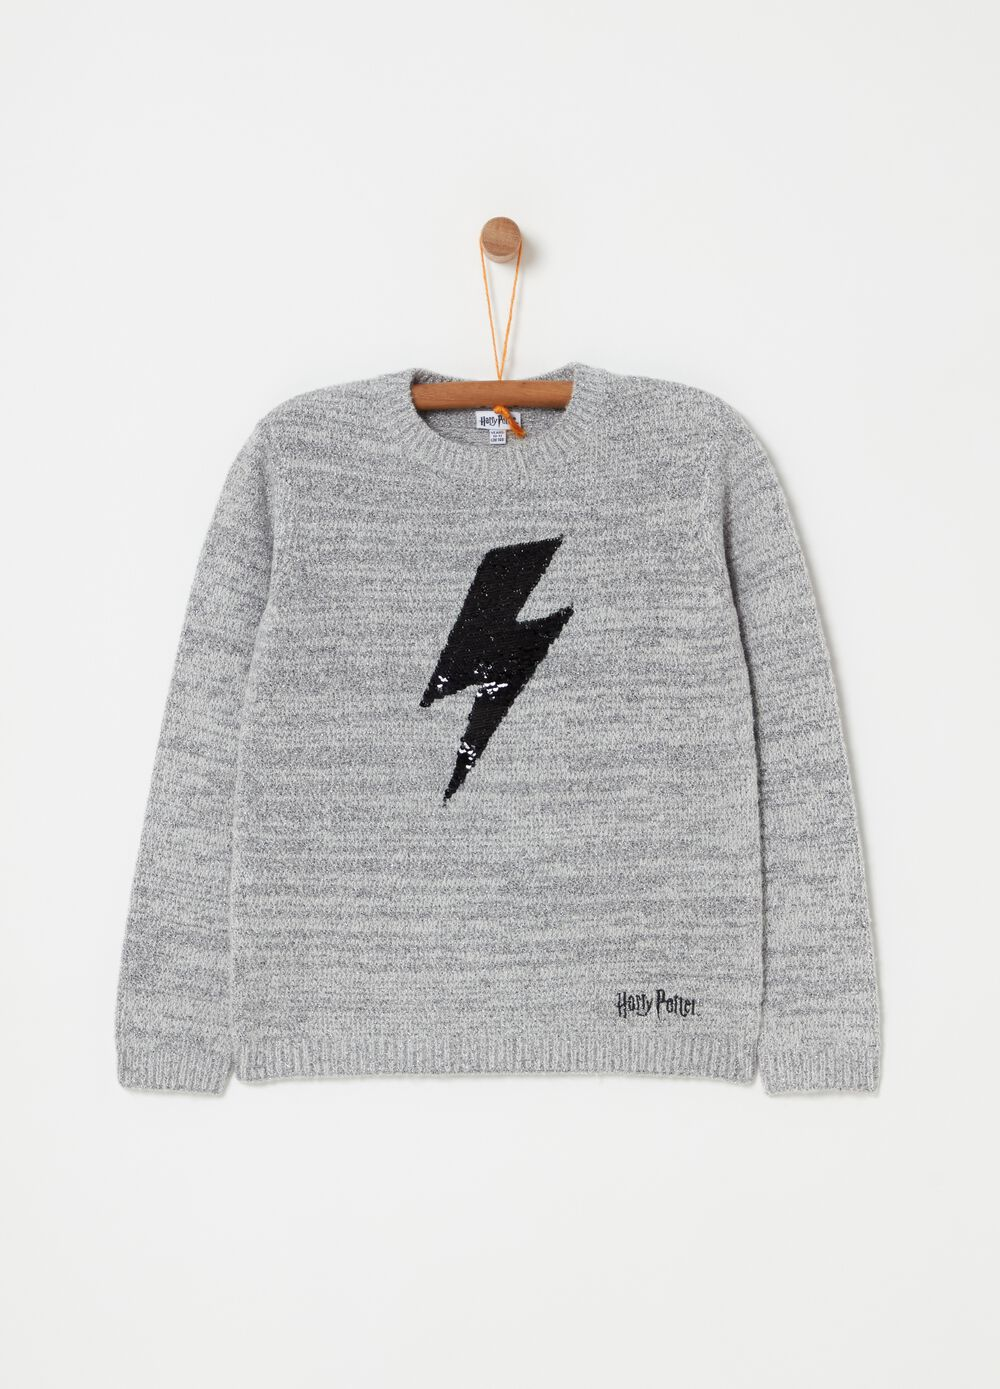 Pullover with lurex and Harry Potter print